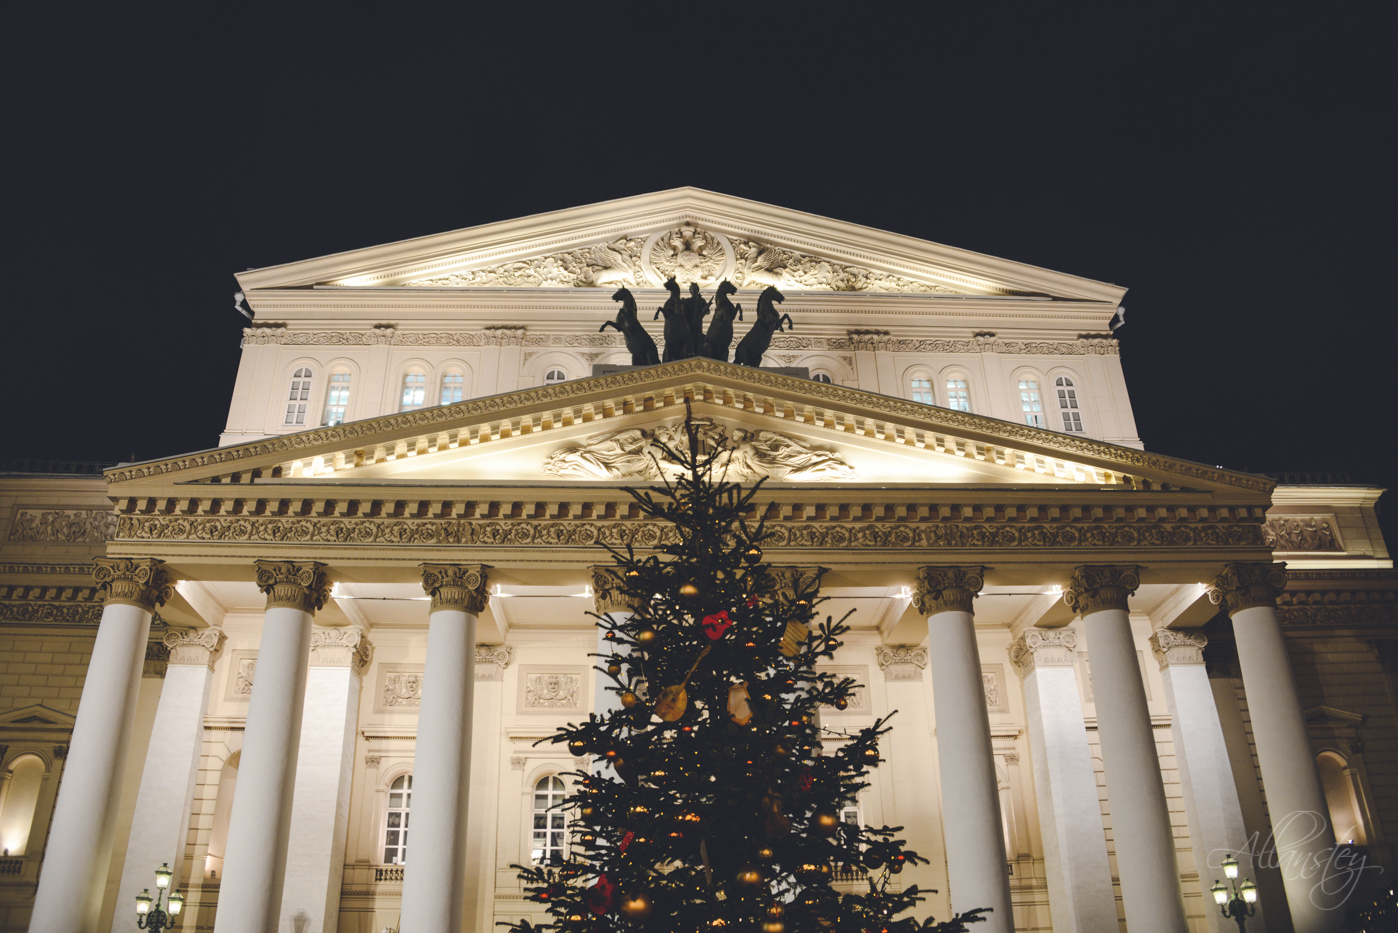 Bolshoi Theatre, Christmas tree